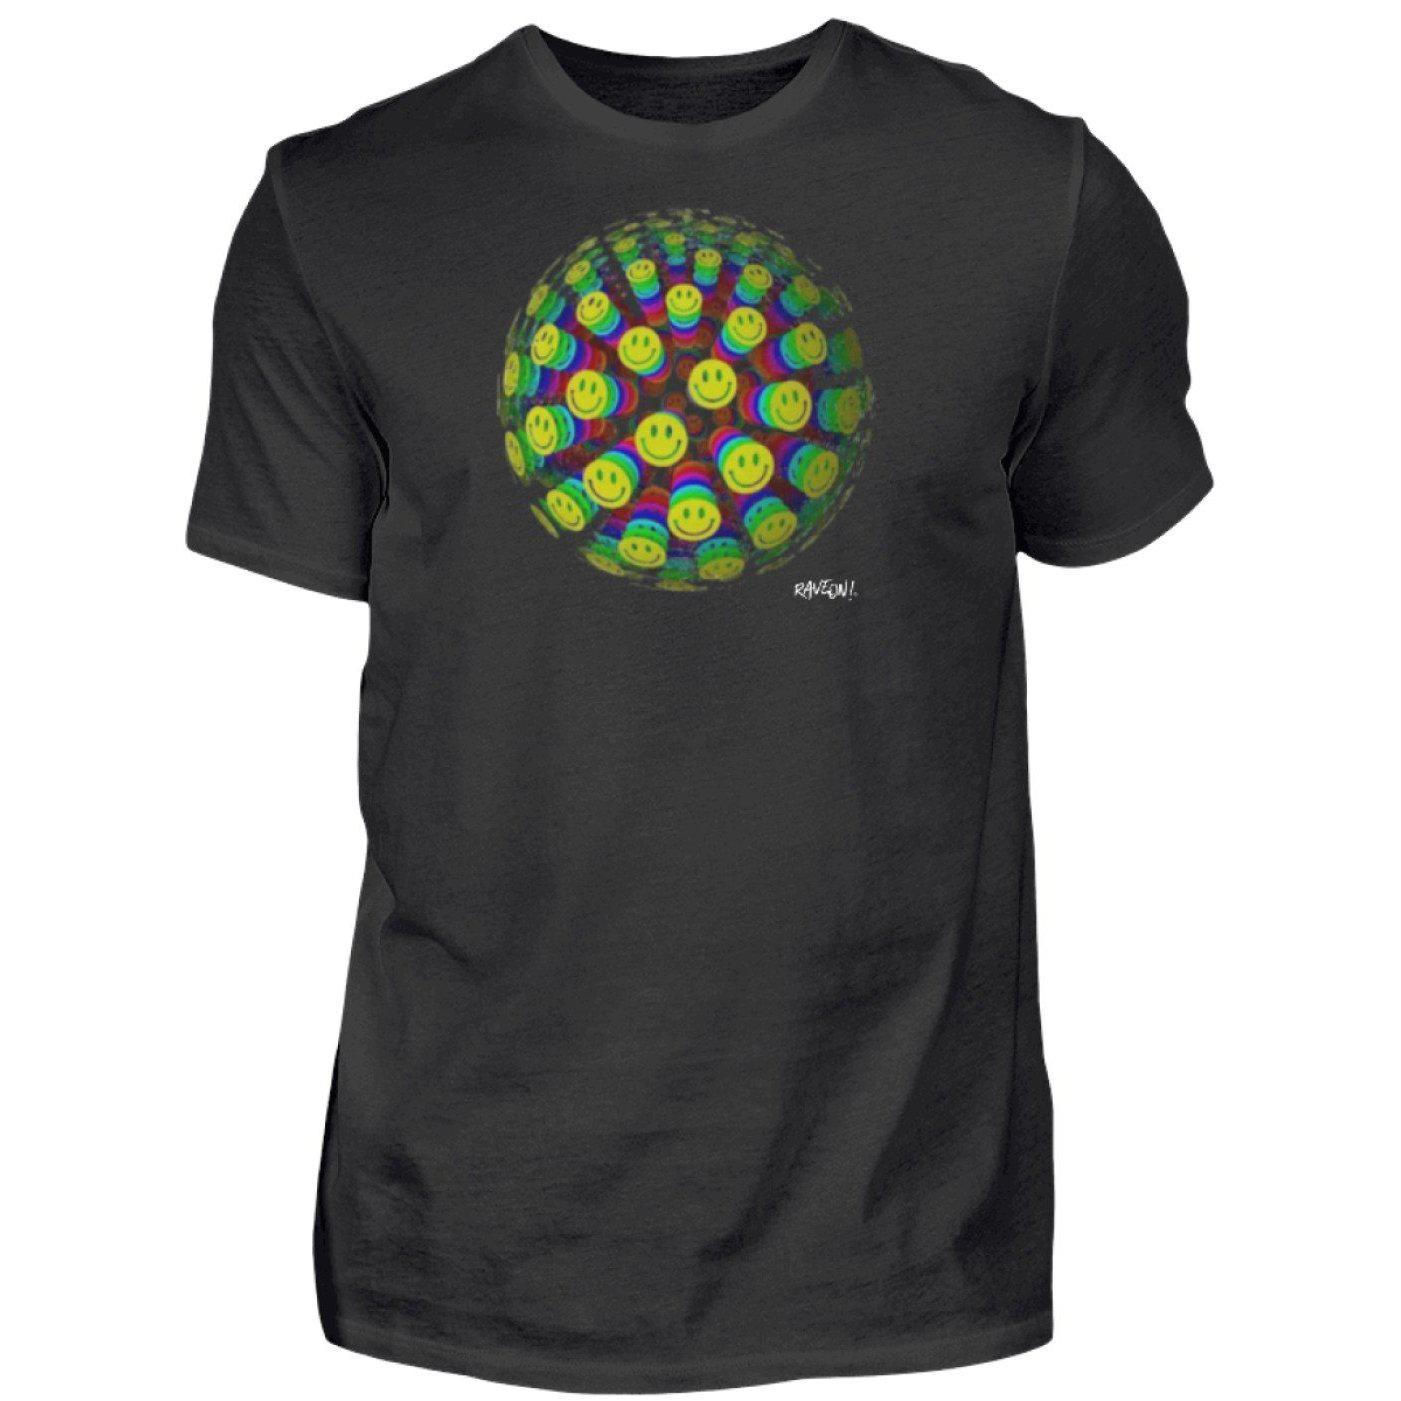 Smilie World - Rave On!® - Shirt-Herren Basic T-Shirt-Black-S-Rave-On! I www.rave-on.shop I Deine Rave & Techno Szene Shop I Ball, Design - Smilie World - Rave On!®, raver, Raver shirt, showcase, smilies shirt, smiling face shirt, techno, World - Sexy Festival Streetwear , Clubwear & Raver Style